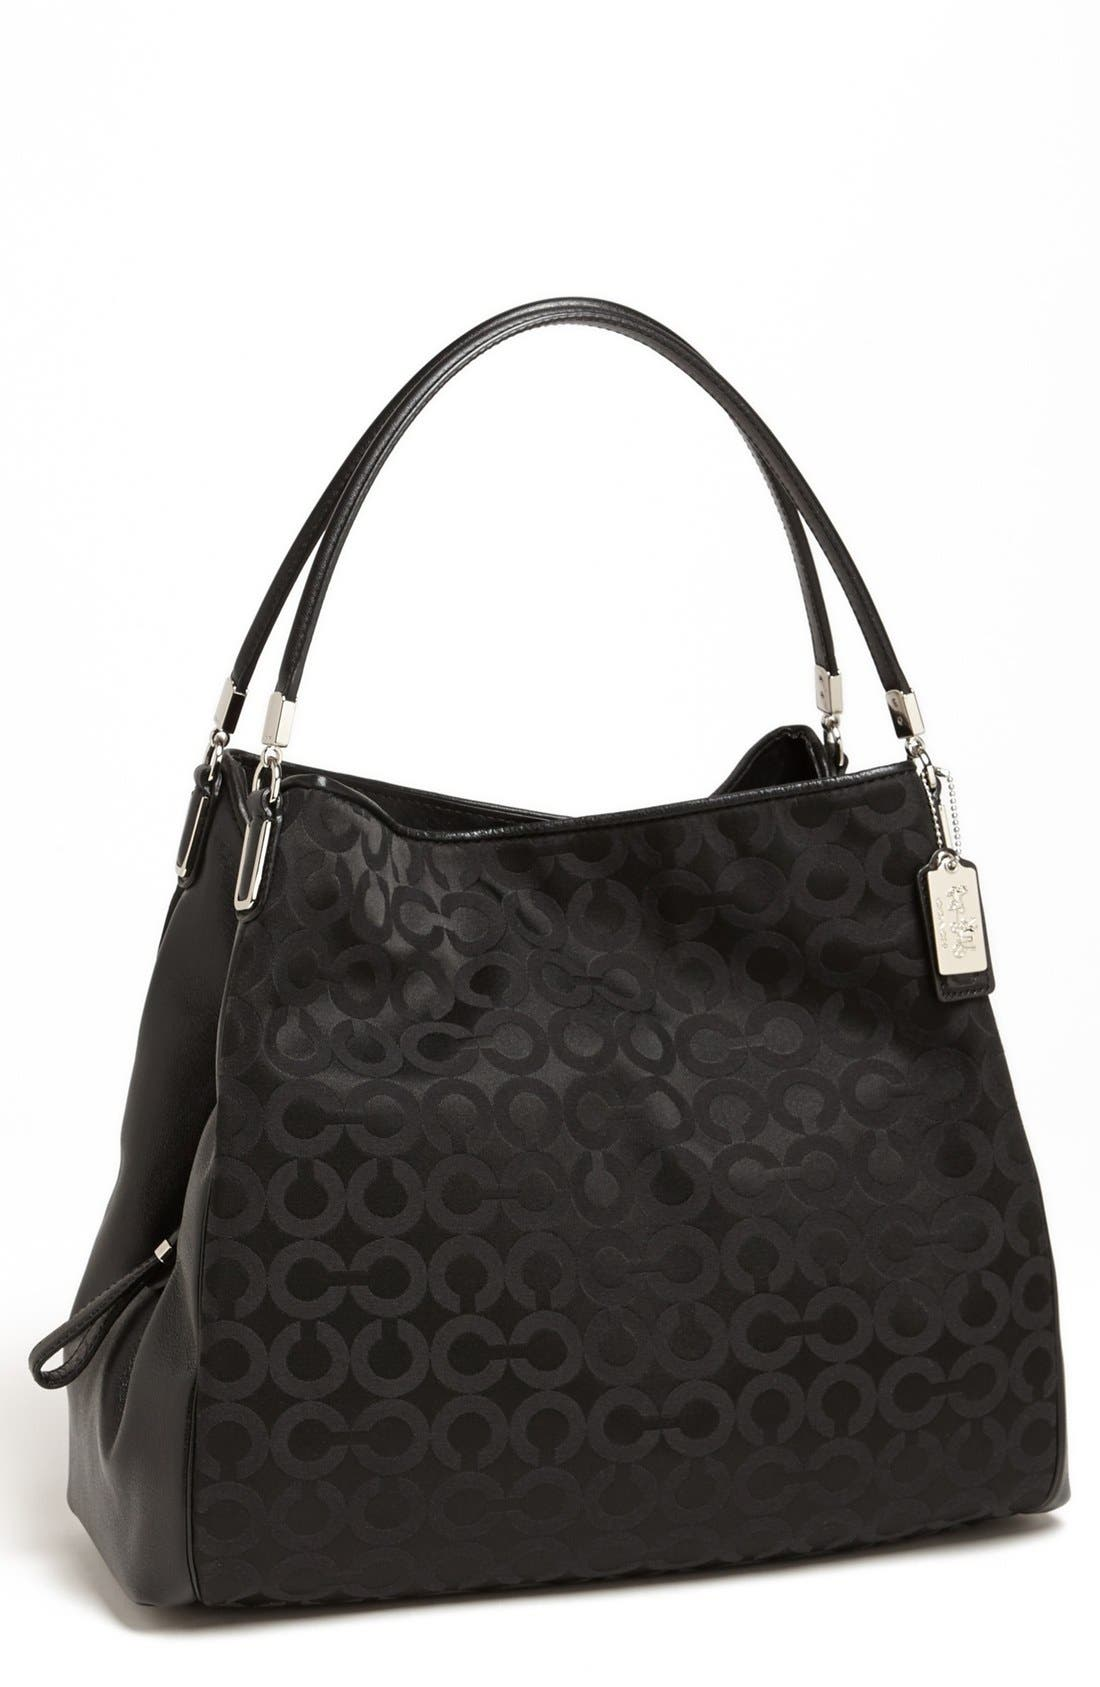 Main Image - COACH 'Madison - Phoebe' Leather Shoulder Bag